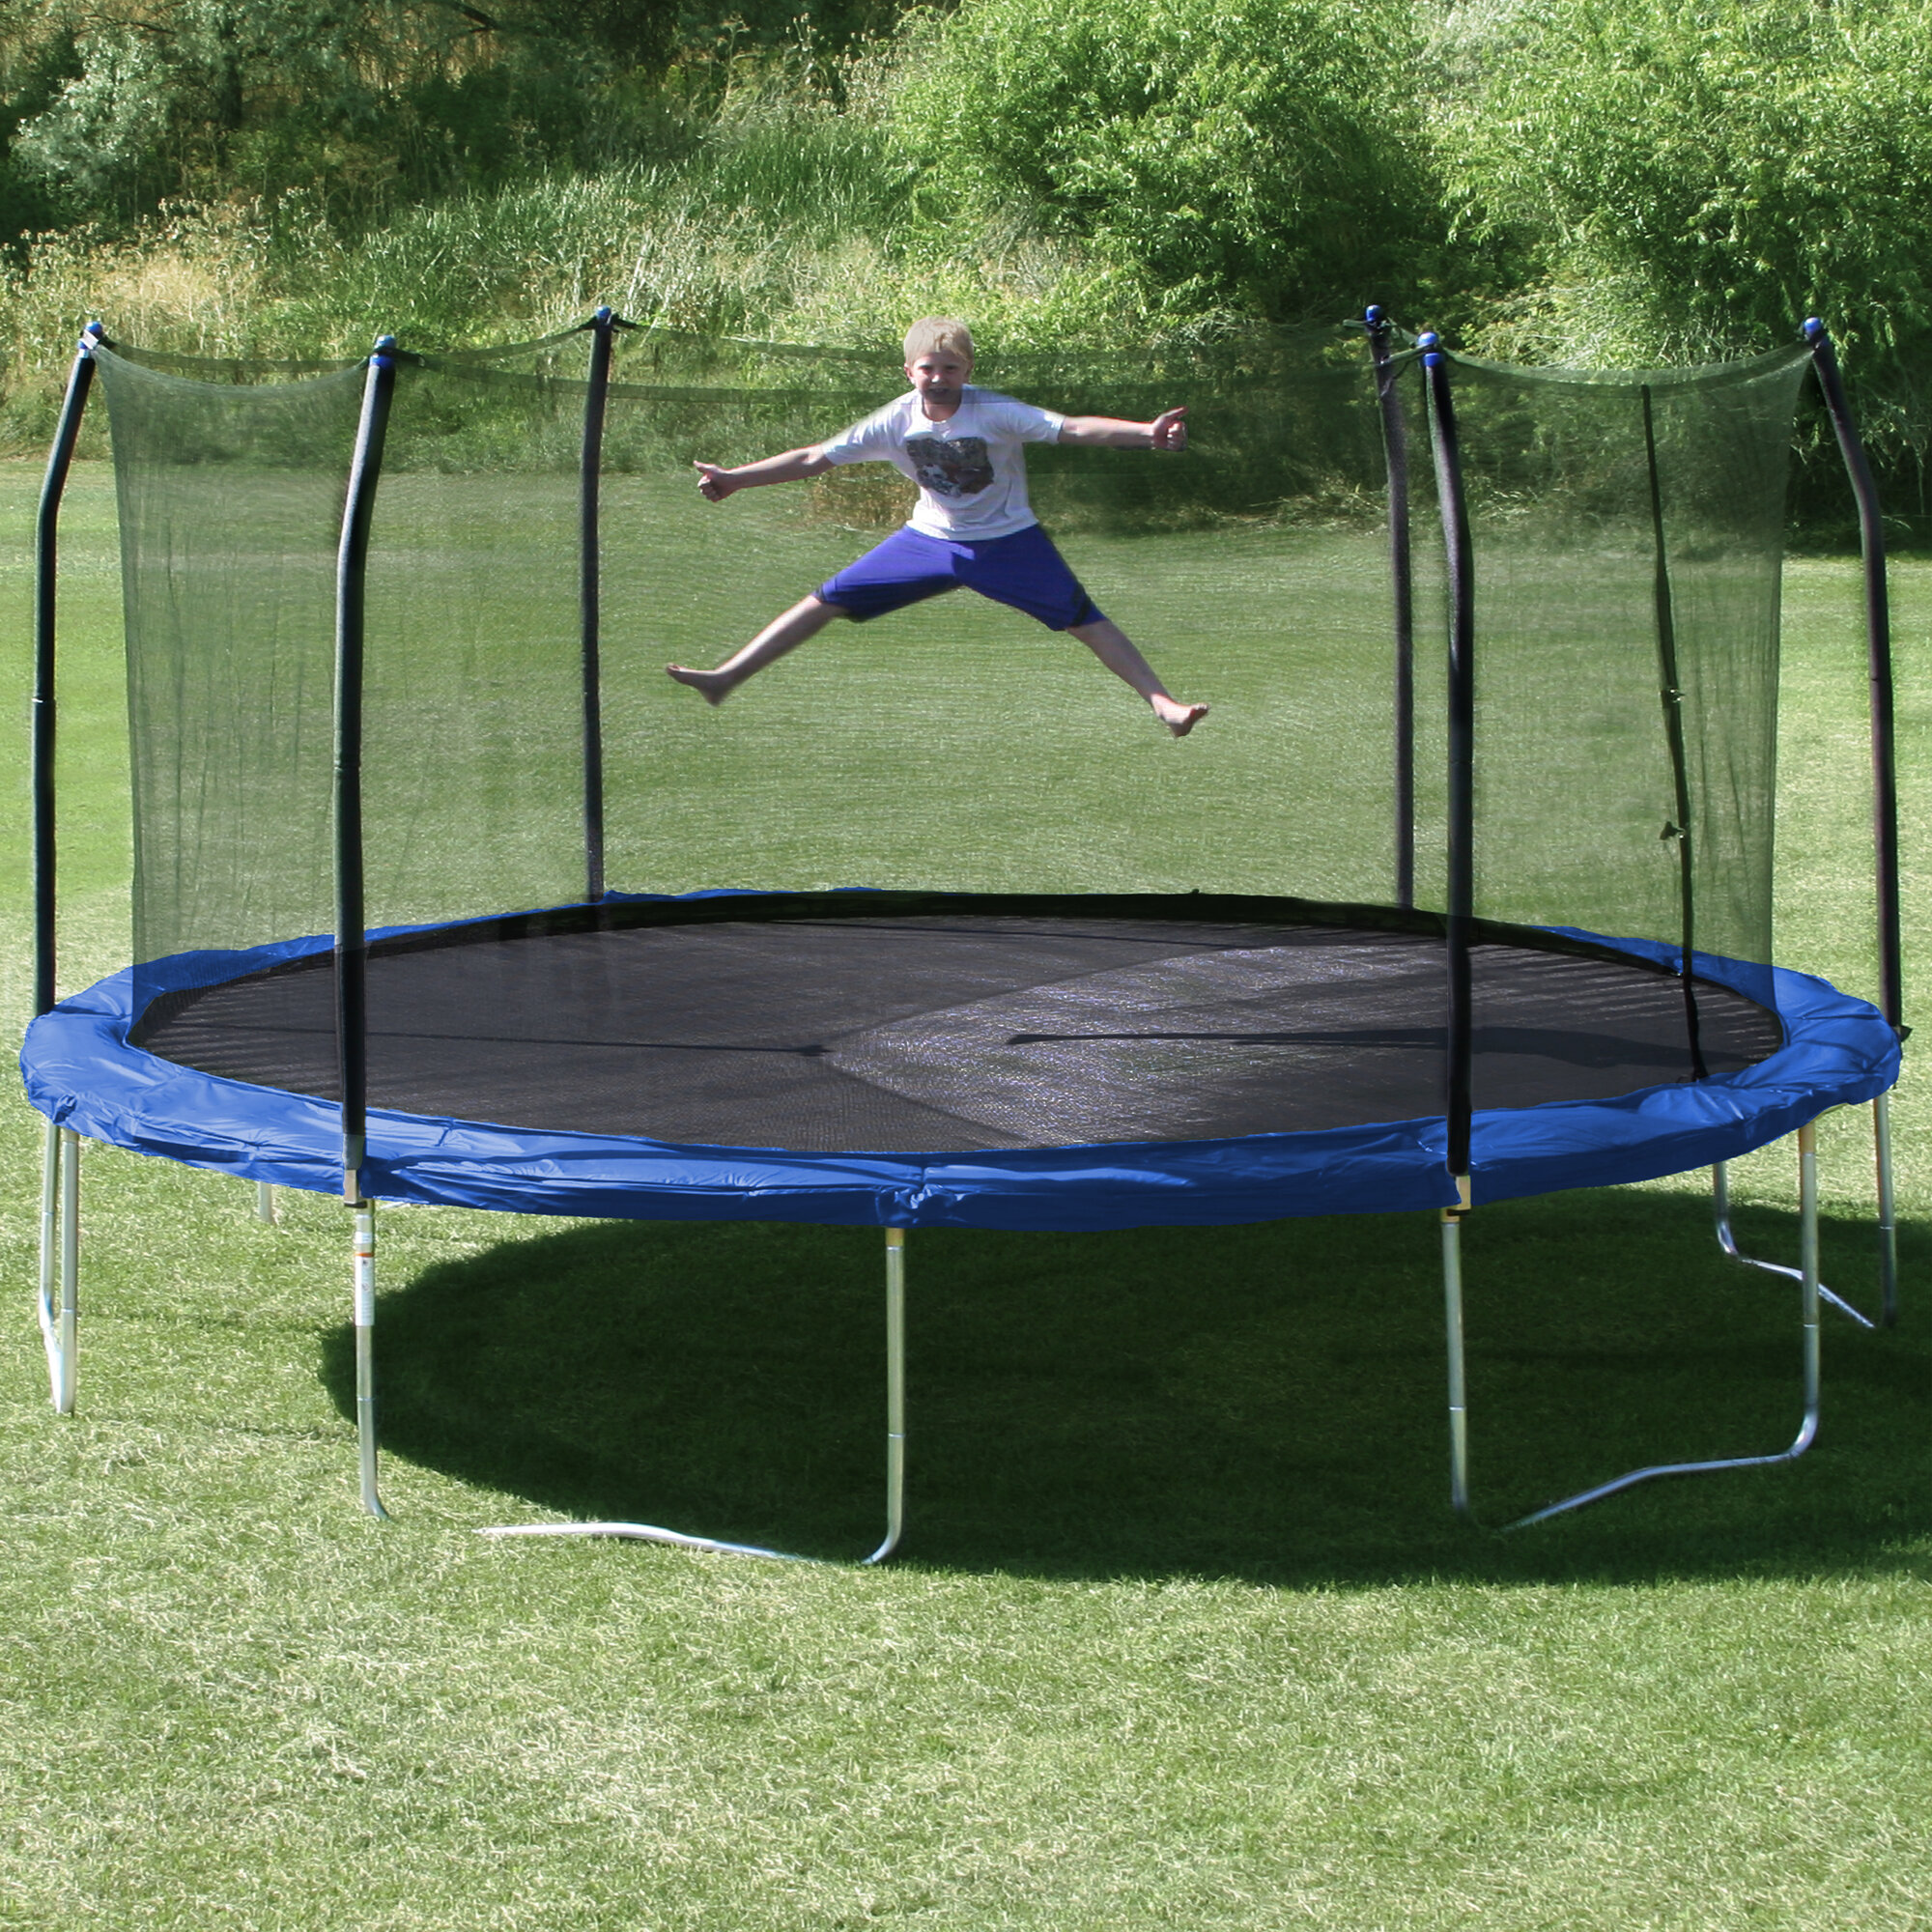 Skywalker Trampolines 17x15: Skywalker Trampolines 17' X 15' Oval Trampoline With